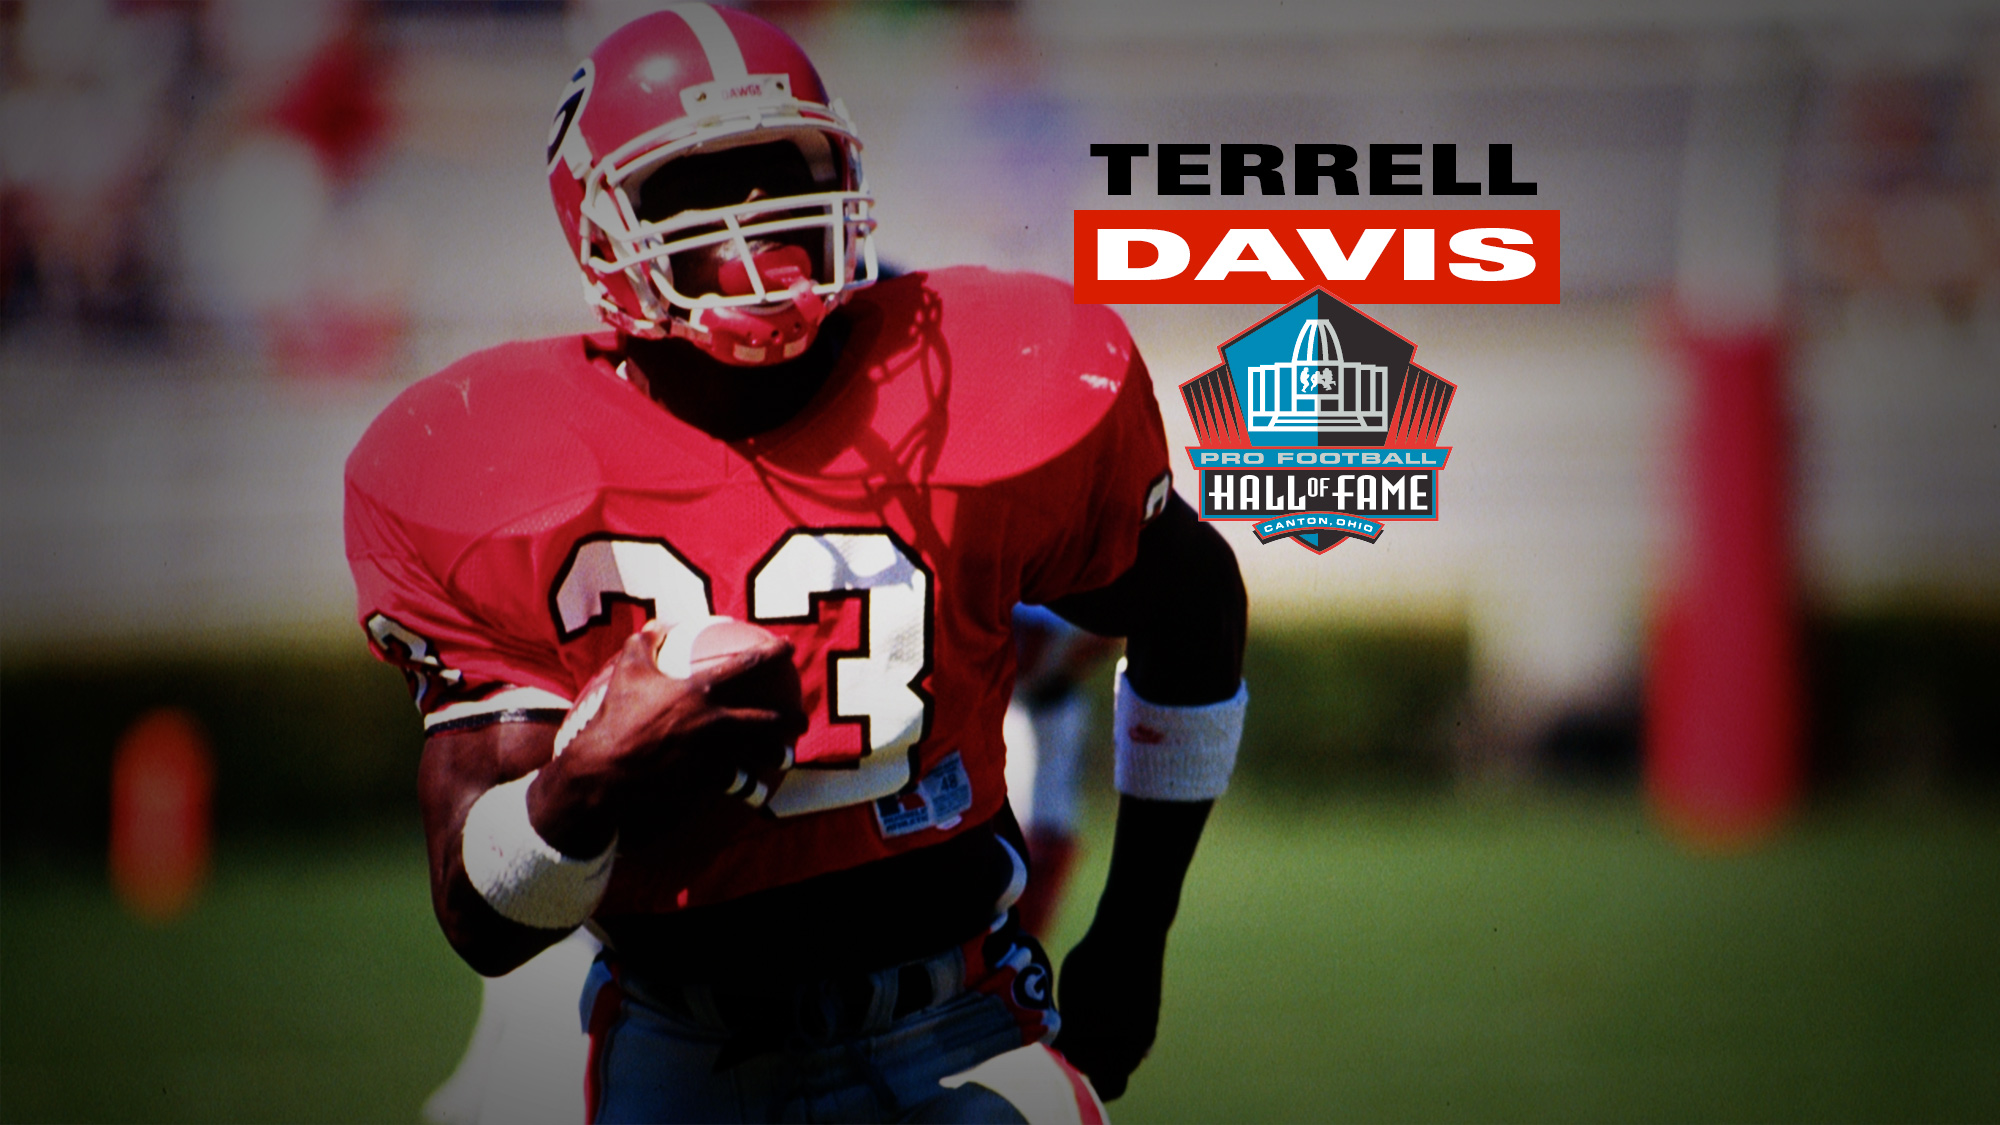 brand new a0459 2bd36 Terrell Davis Enshrined into Pro Football Hall of Fame ...